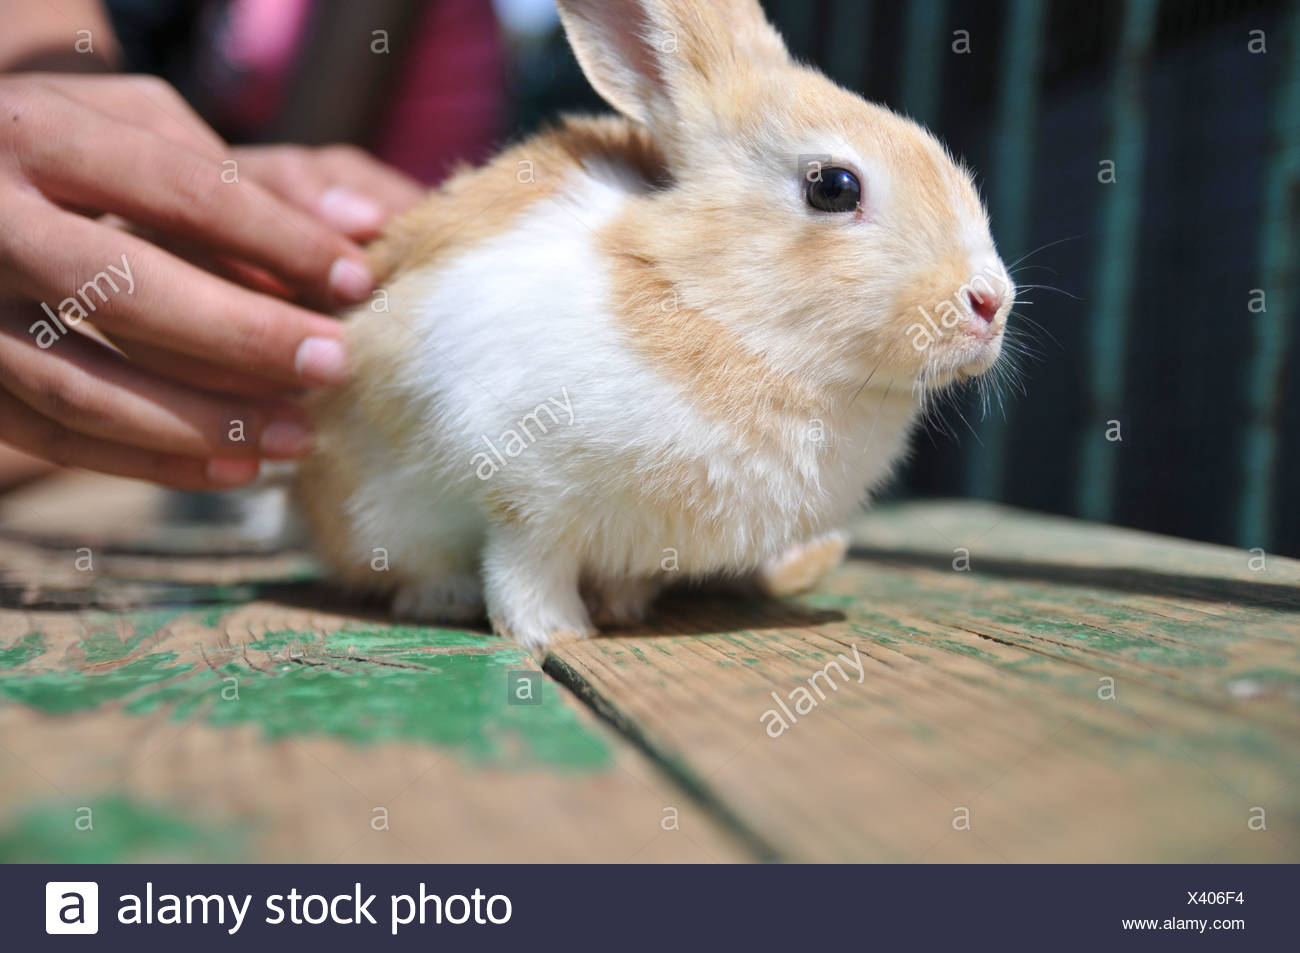 Children's holiday activity a Petting Zoo - Stock Image